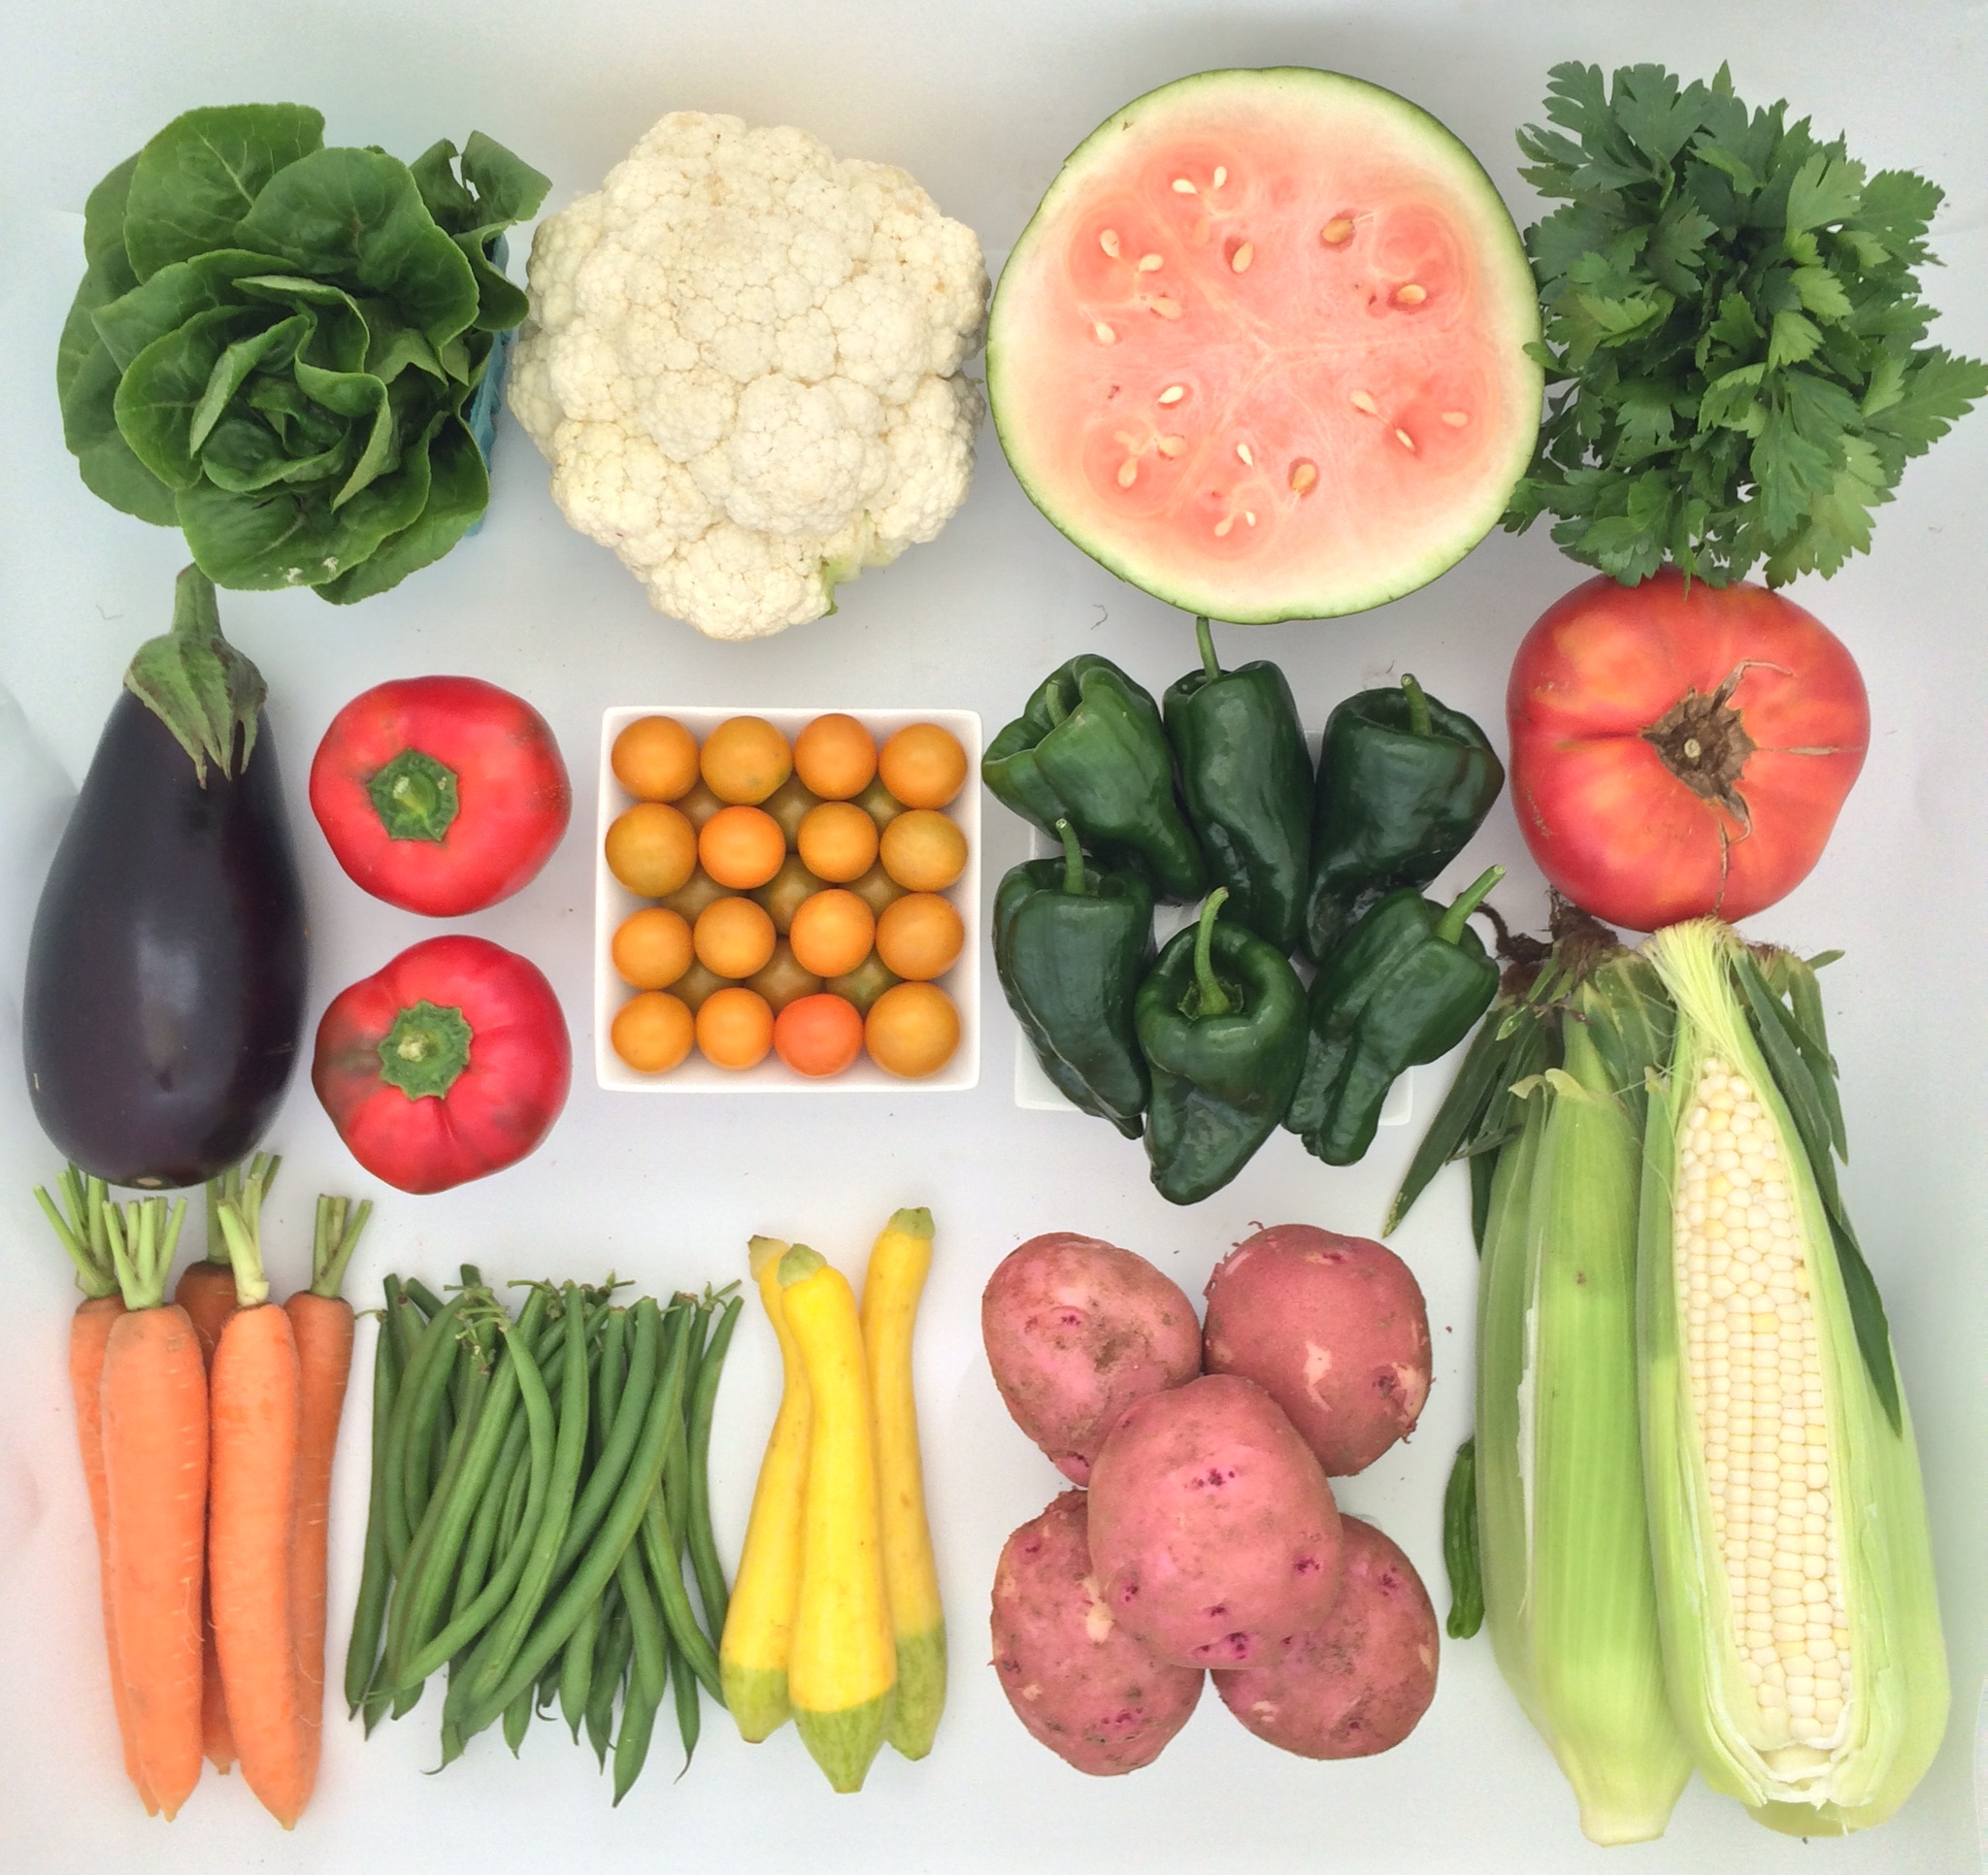 Helsing Junction Farms CSA Large Share